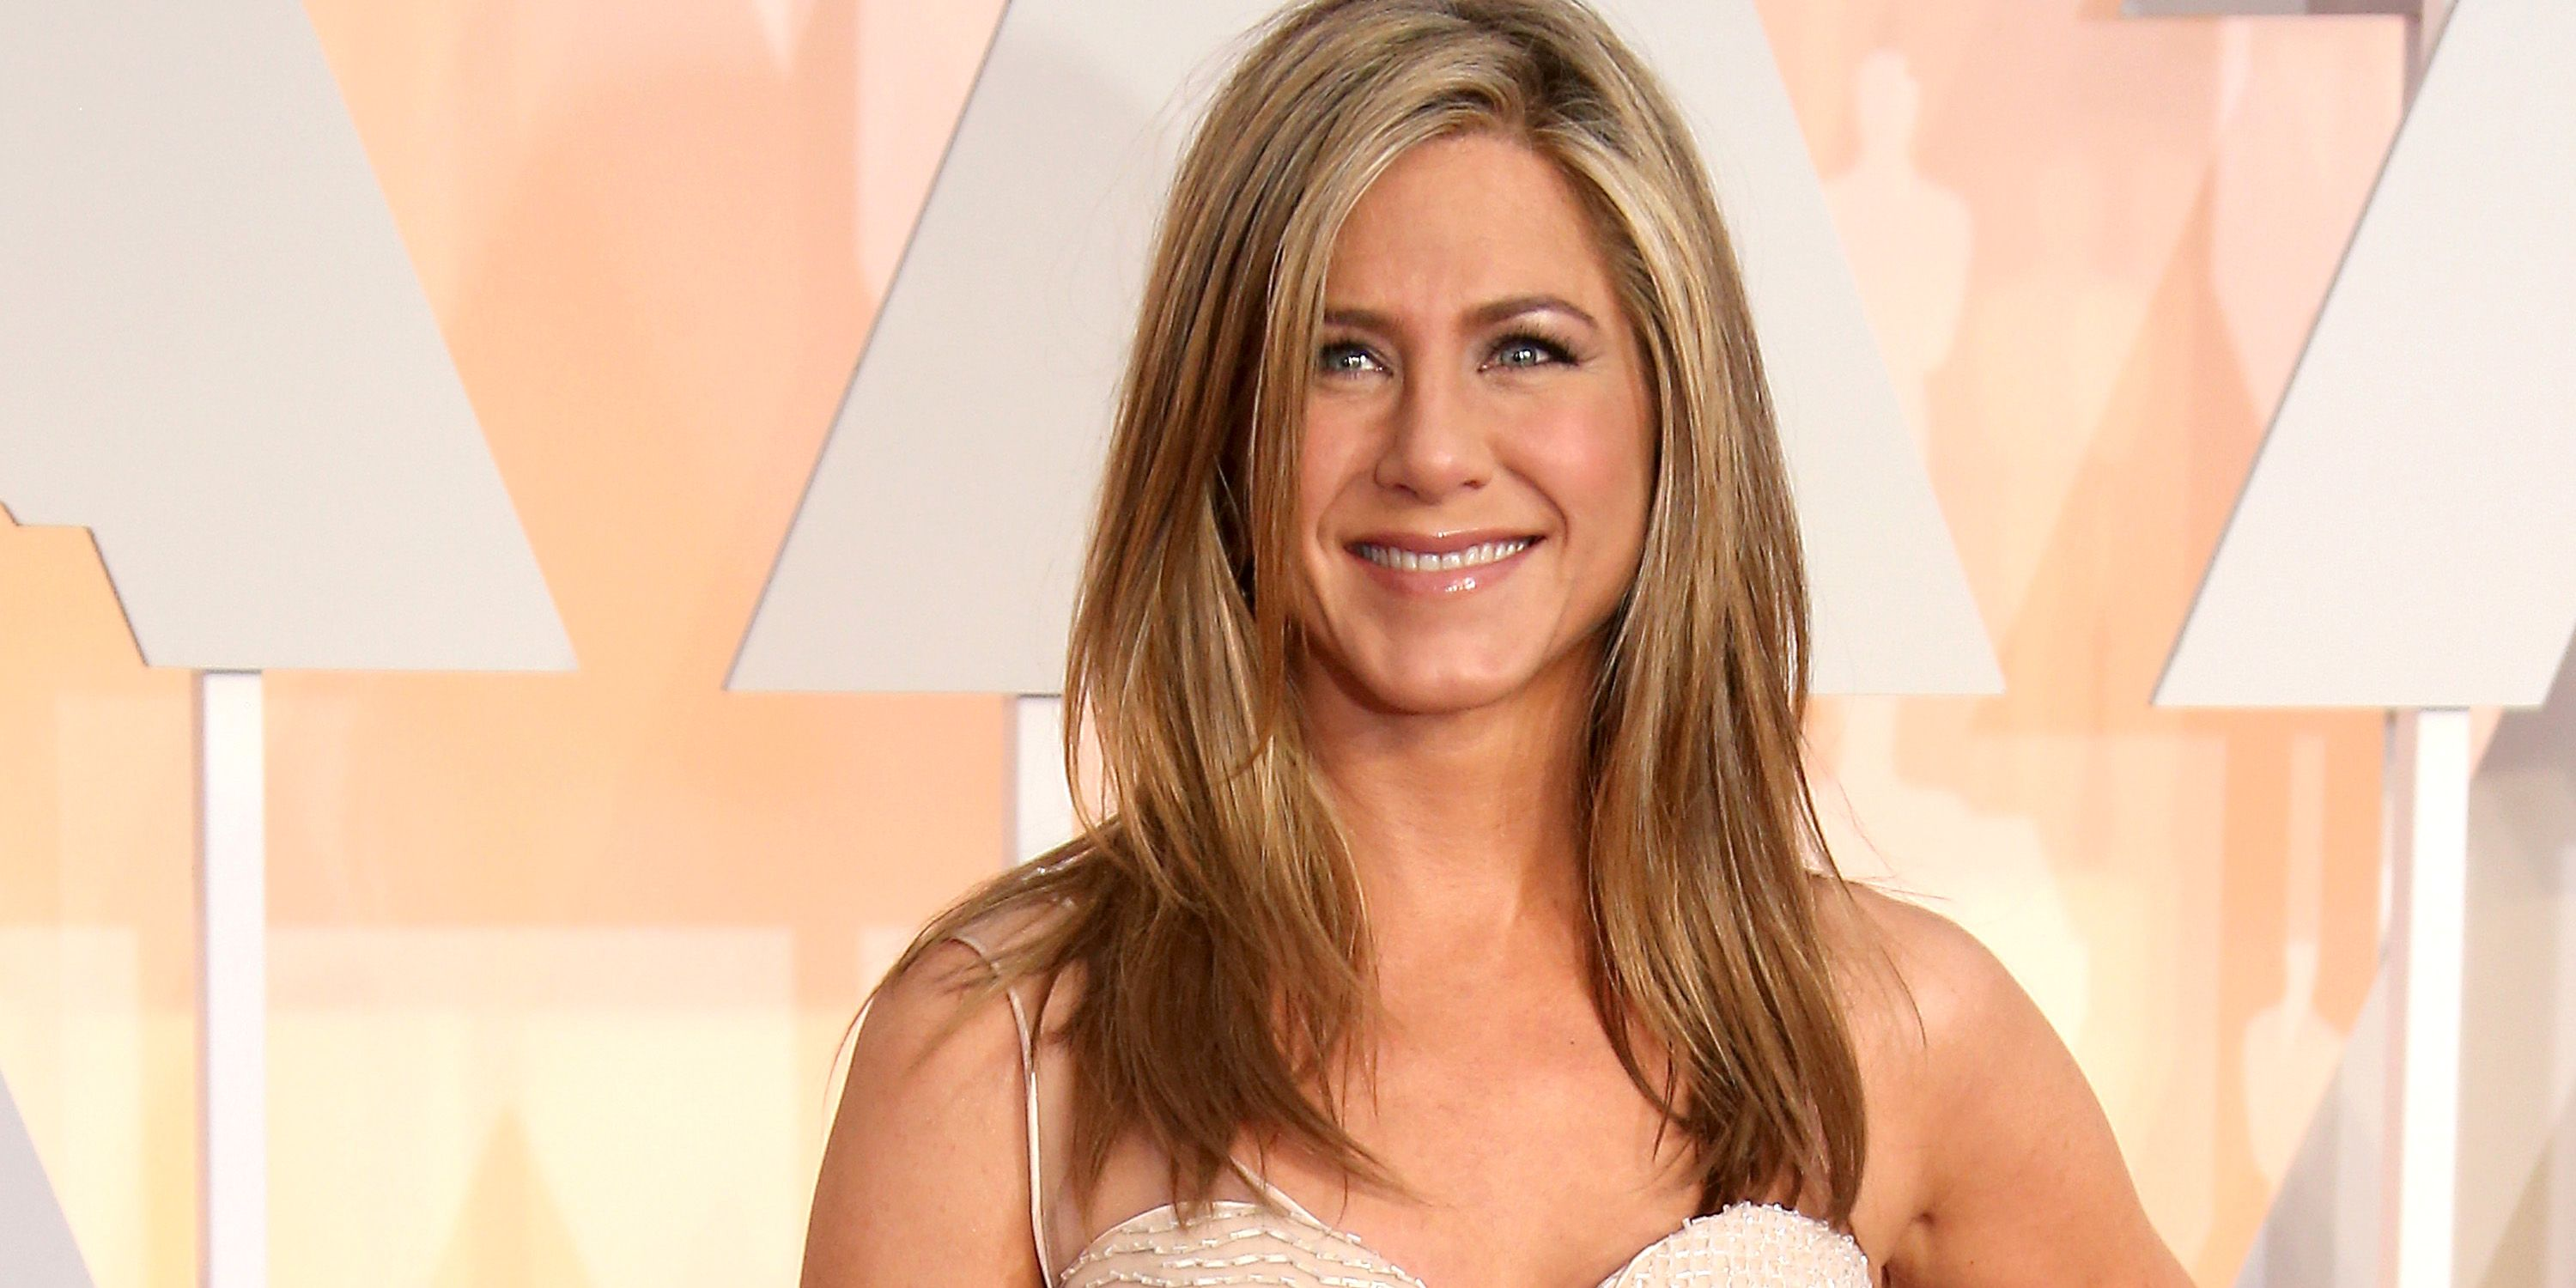 Jennifer Aniston: I Am Not Pregnant. What I Am Is Fed Up Jennifer Aniston: I Am Not Pregnant. What I Am Is Fed Up new images